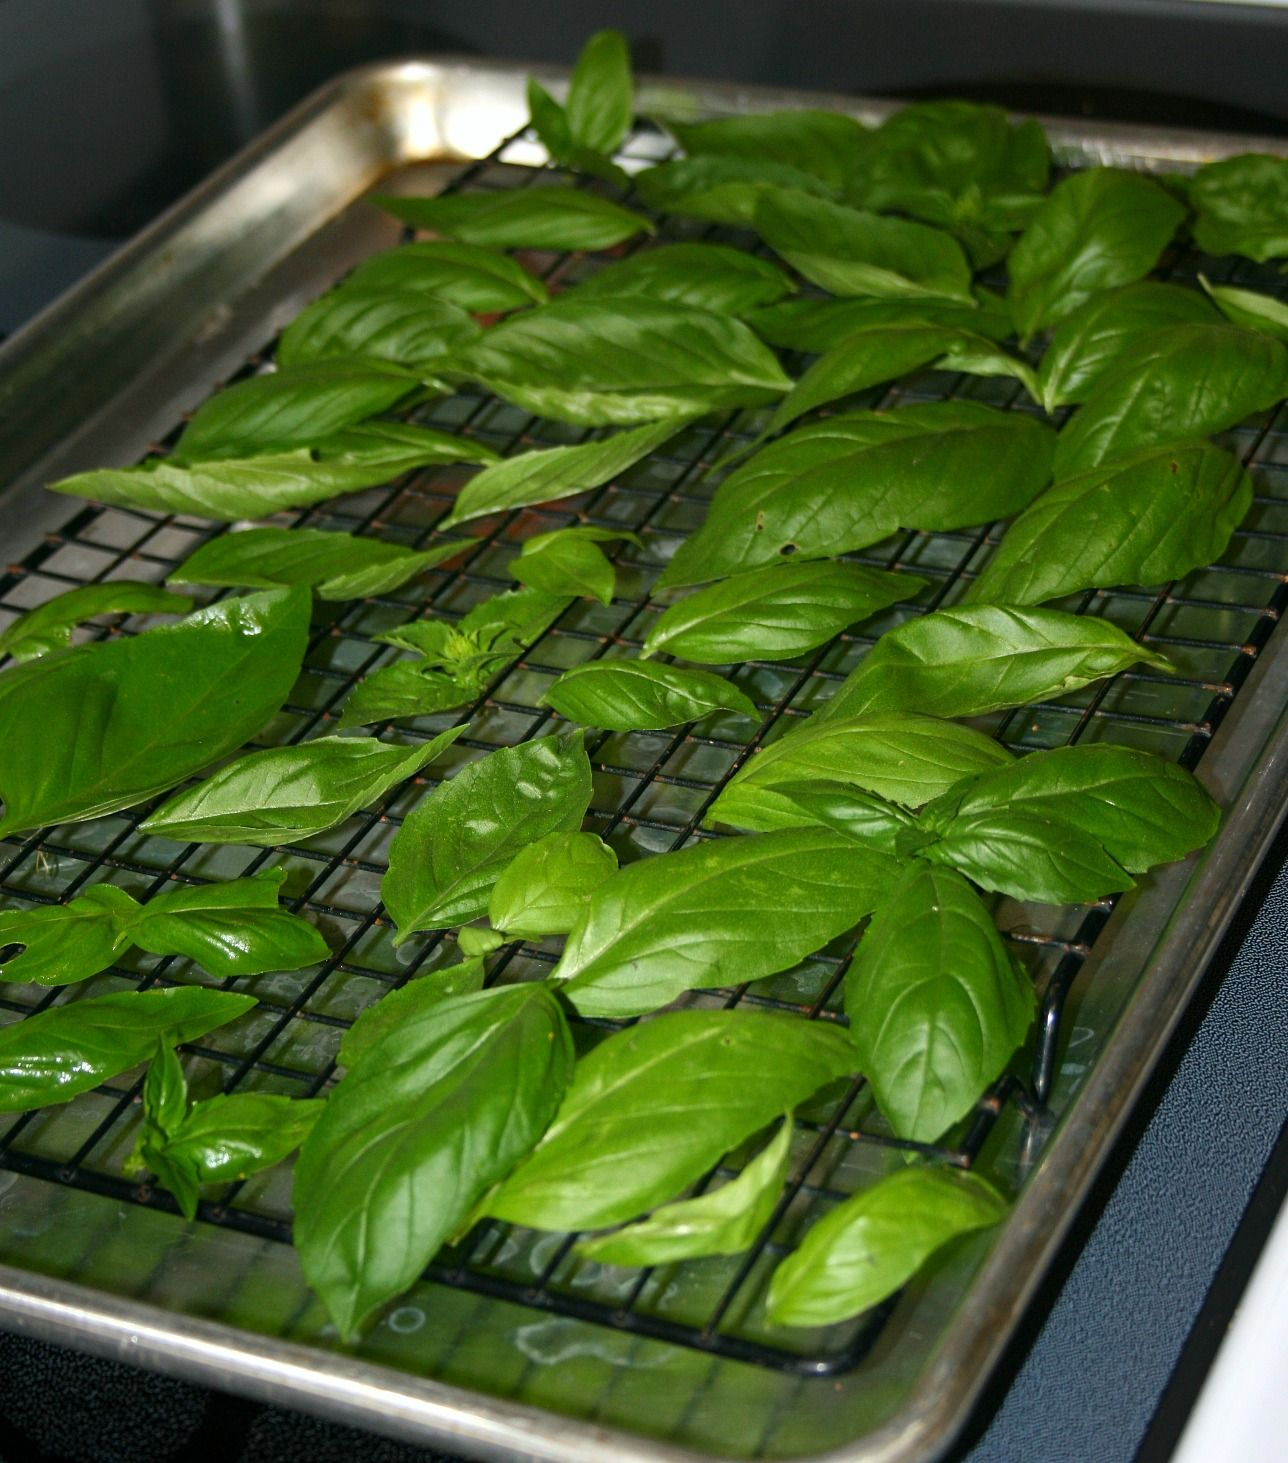 Kitchen Herb Gardens That Will Make Cooking Wonderful: How To Dry Herbs In The Oven...this Works So Much Better